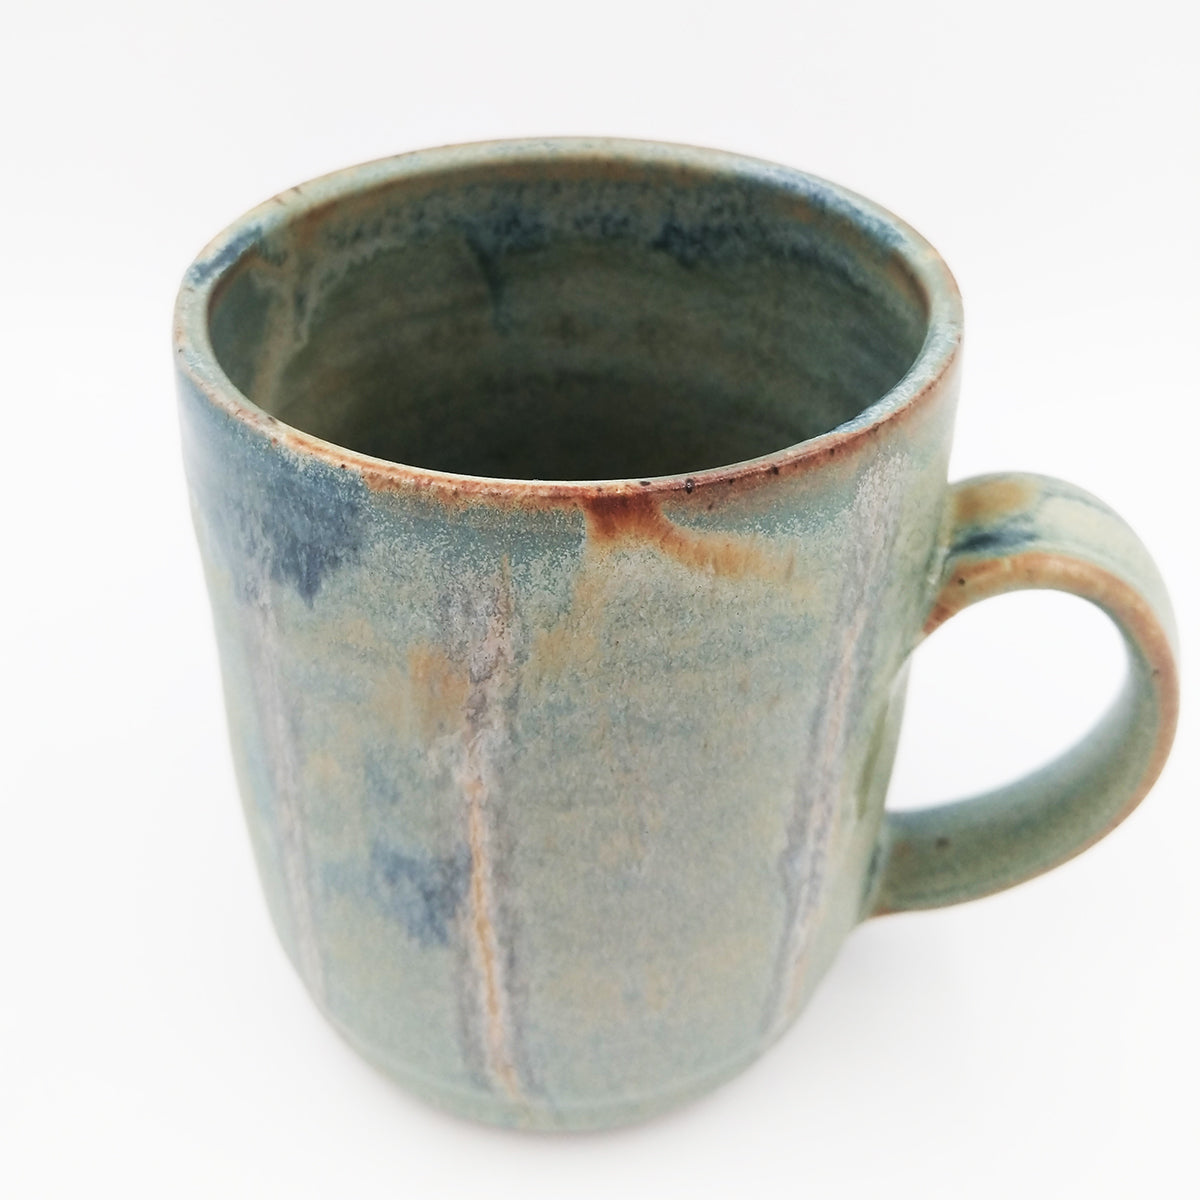 One of a kind, 18 oz Slate and Badlands mug